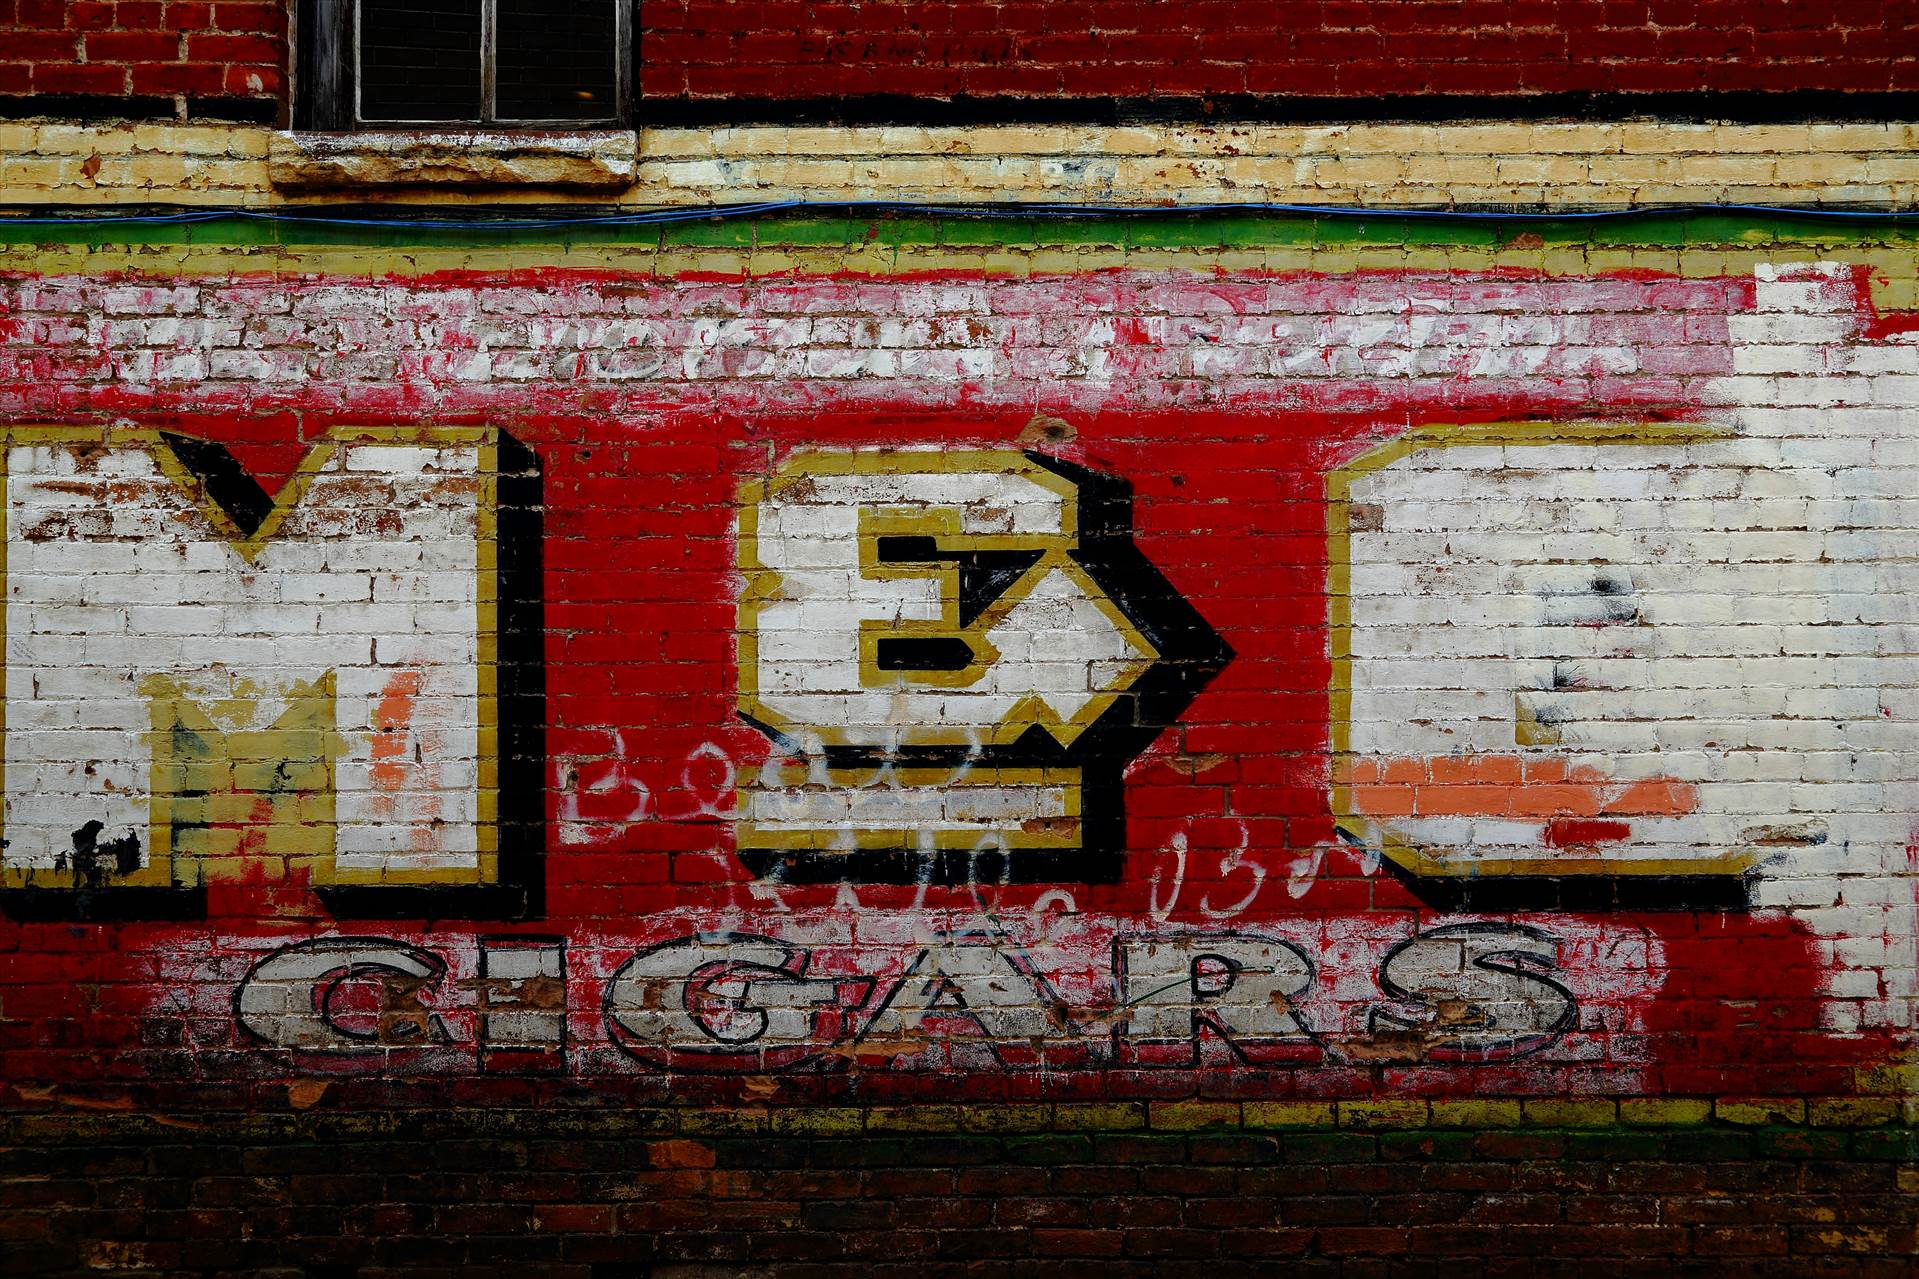 Old Signage in Alley - An alley in Glenwood Springs, CO by Scott Smith Photos